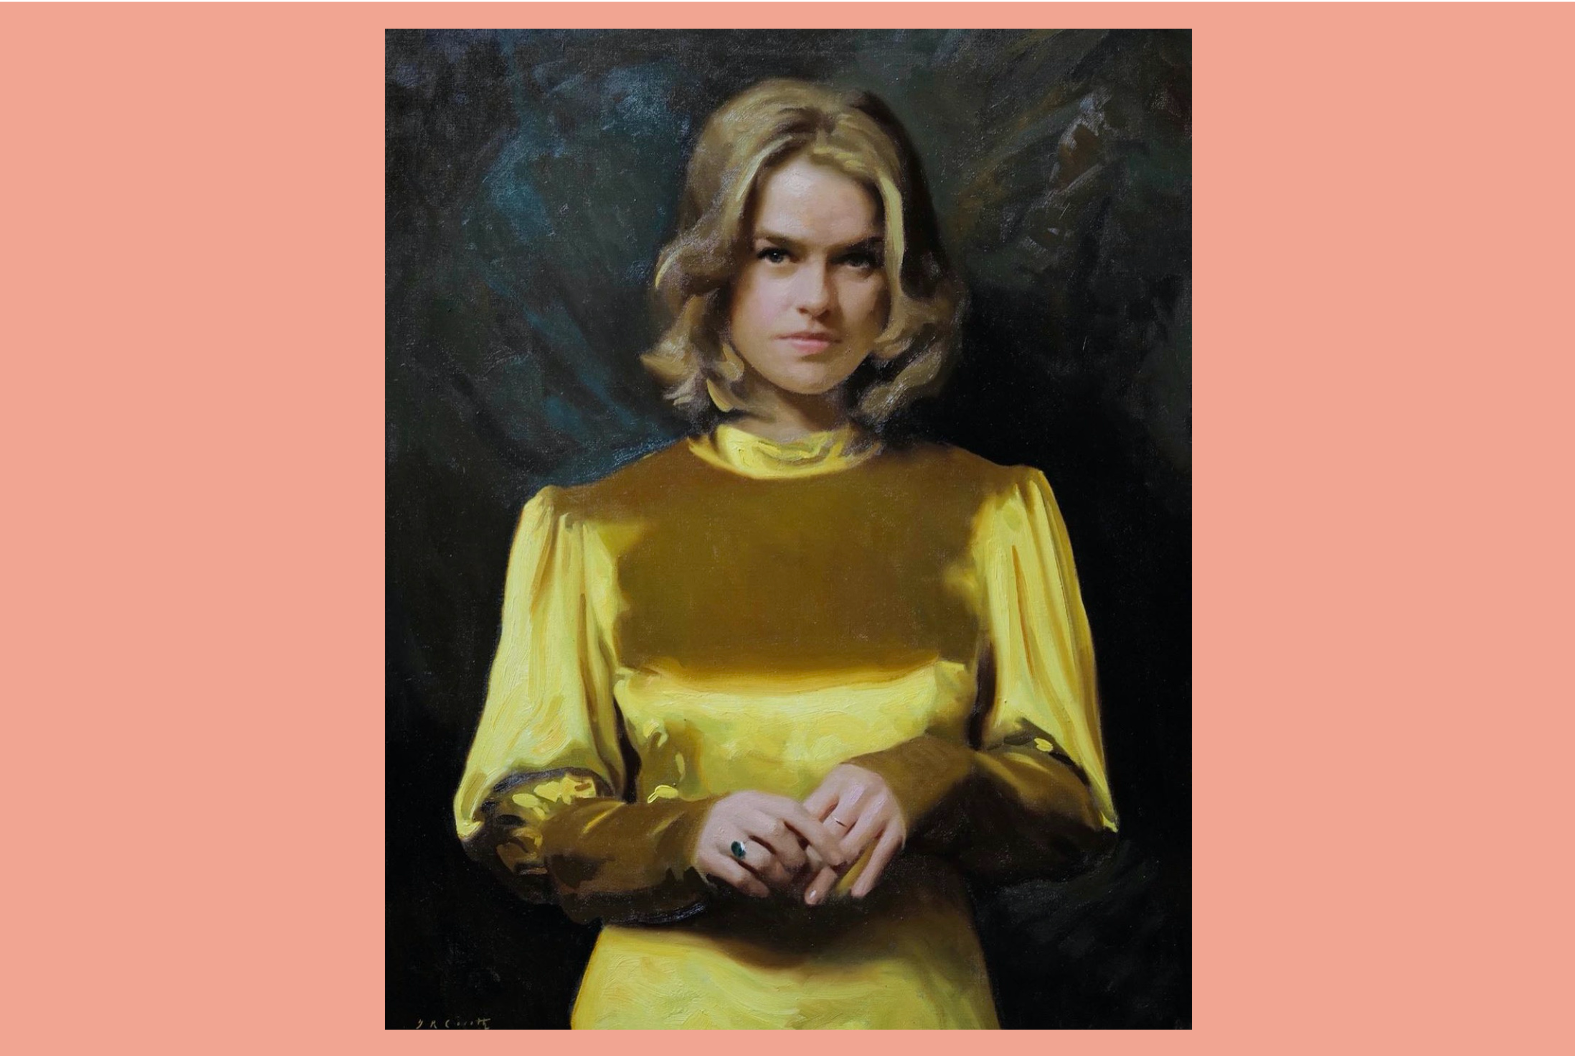 Jamie Coreth's portrait painting of actress Alice Eve